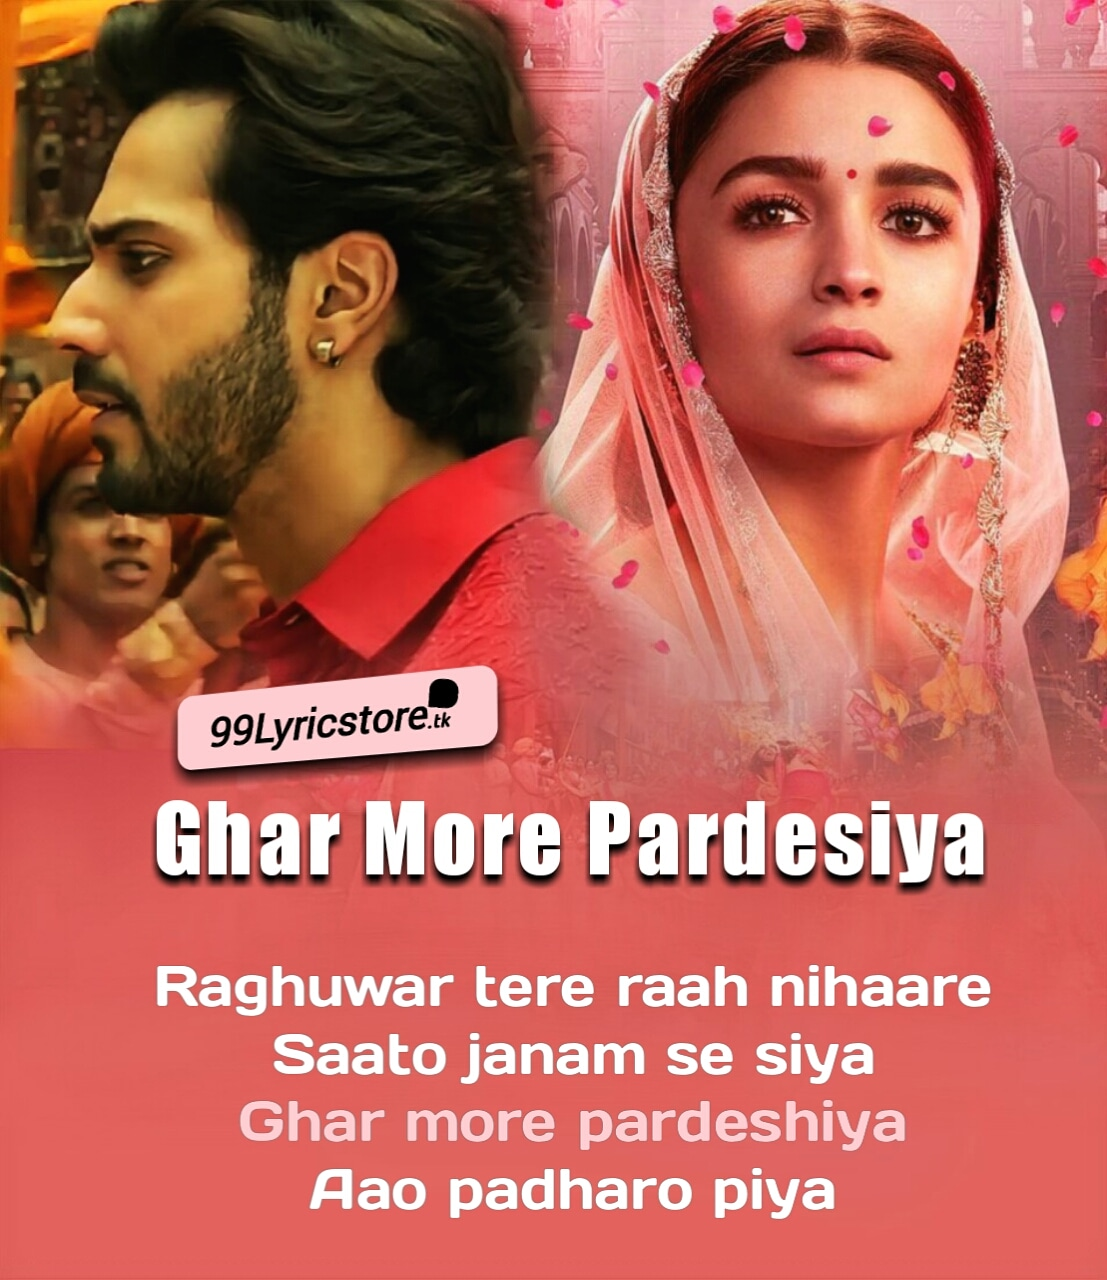 Kalank Movie Song Ghar More Pardesiya Lyrics Sung by Shreya Ghoshal & Vaishlai Mhade